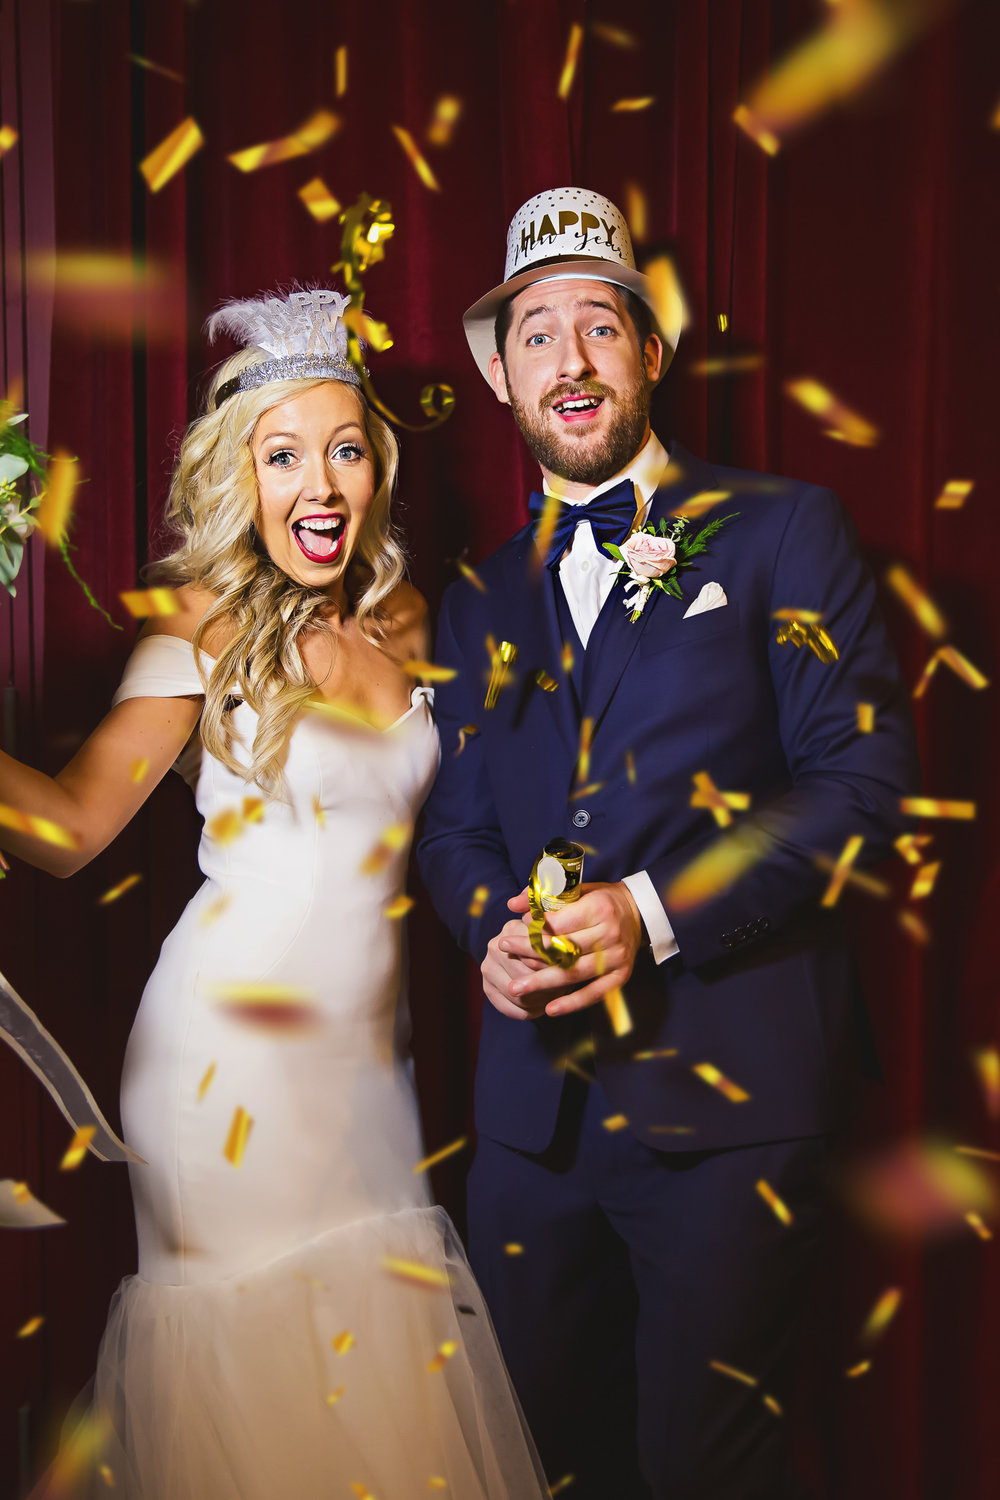 …and we brought along some gold confetti poppers! Because it's not a real New Year's Eve celebration without them (plus, fun wedding photos are our favourite!).